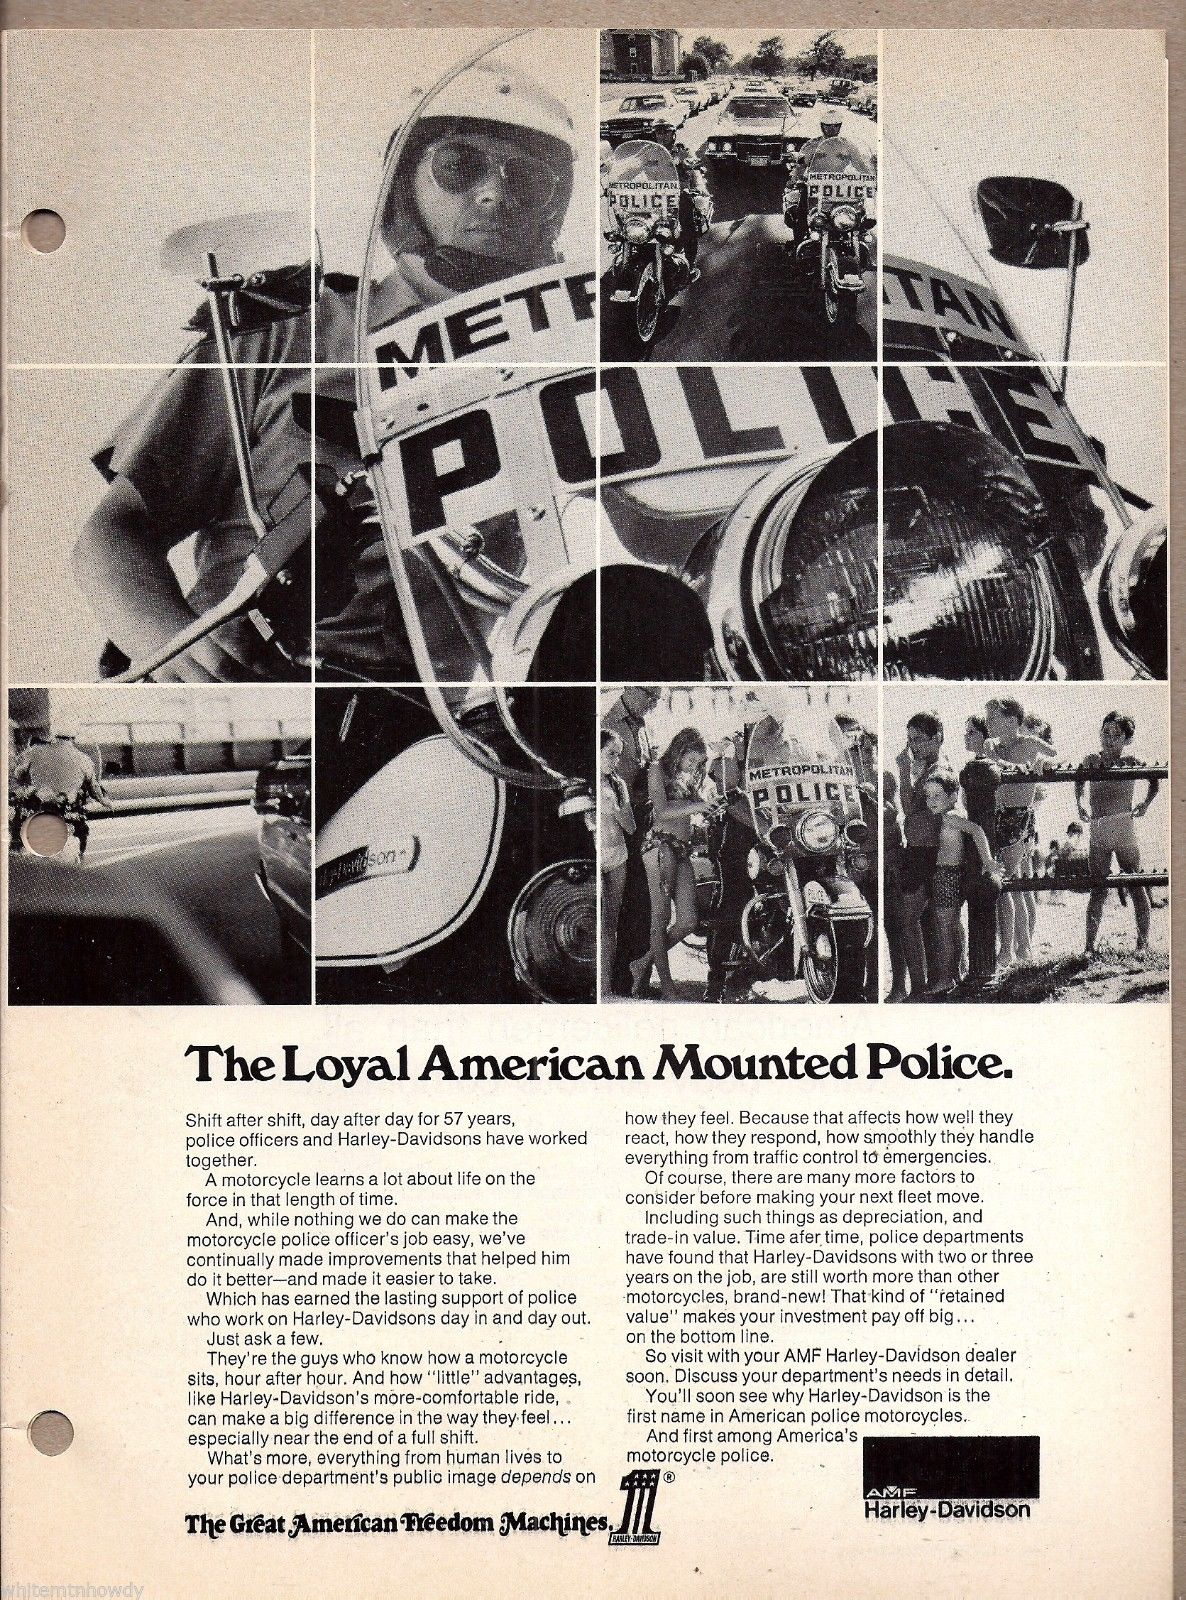 The Loyal American Mounted Police